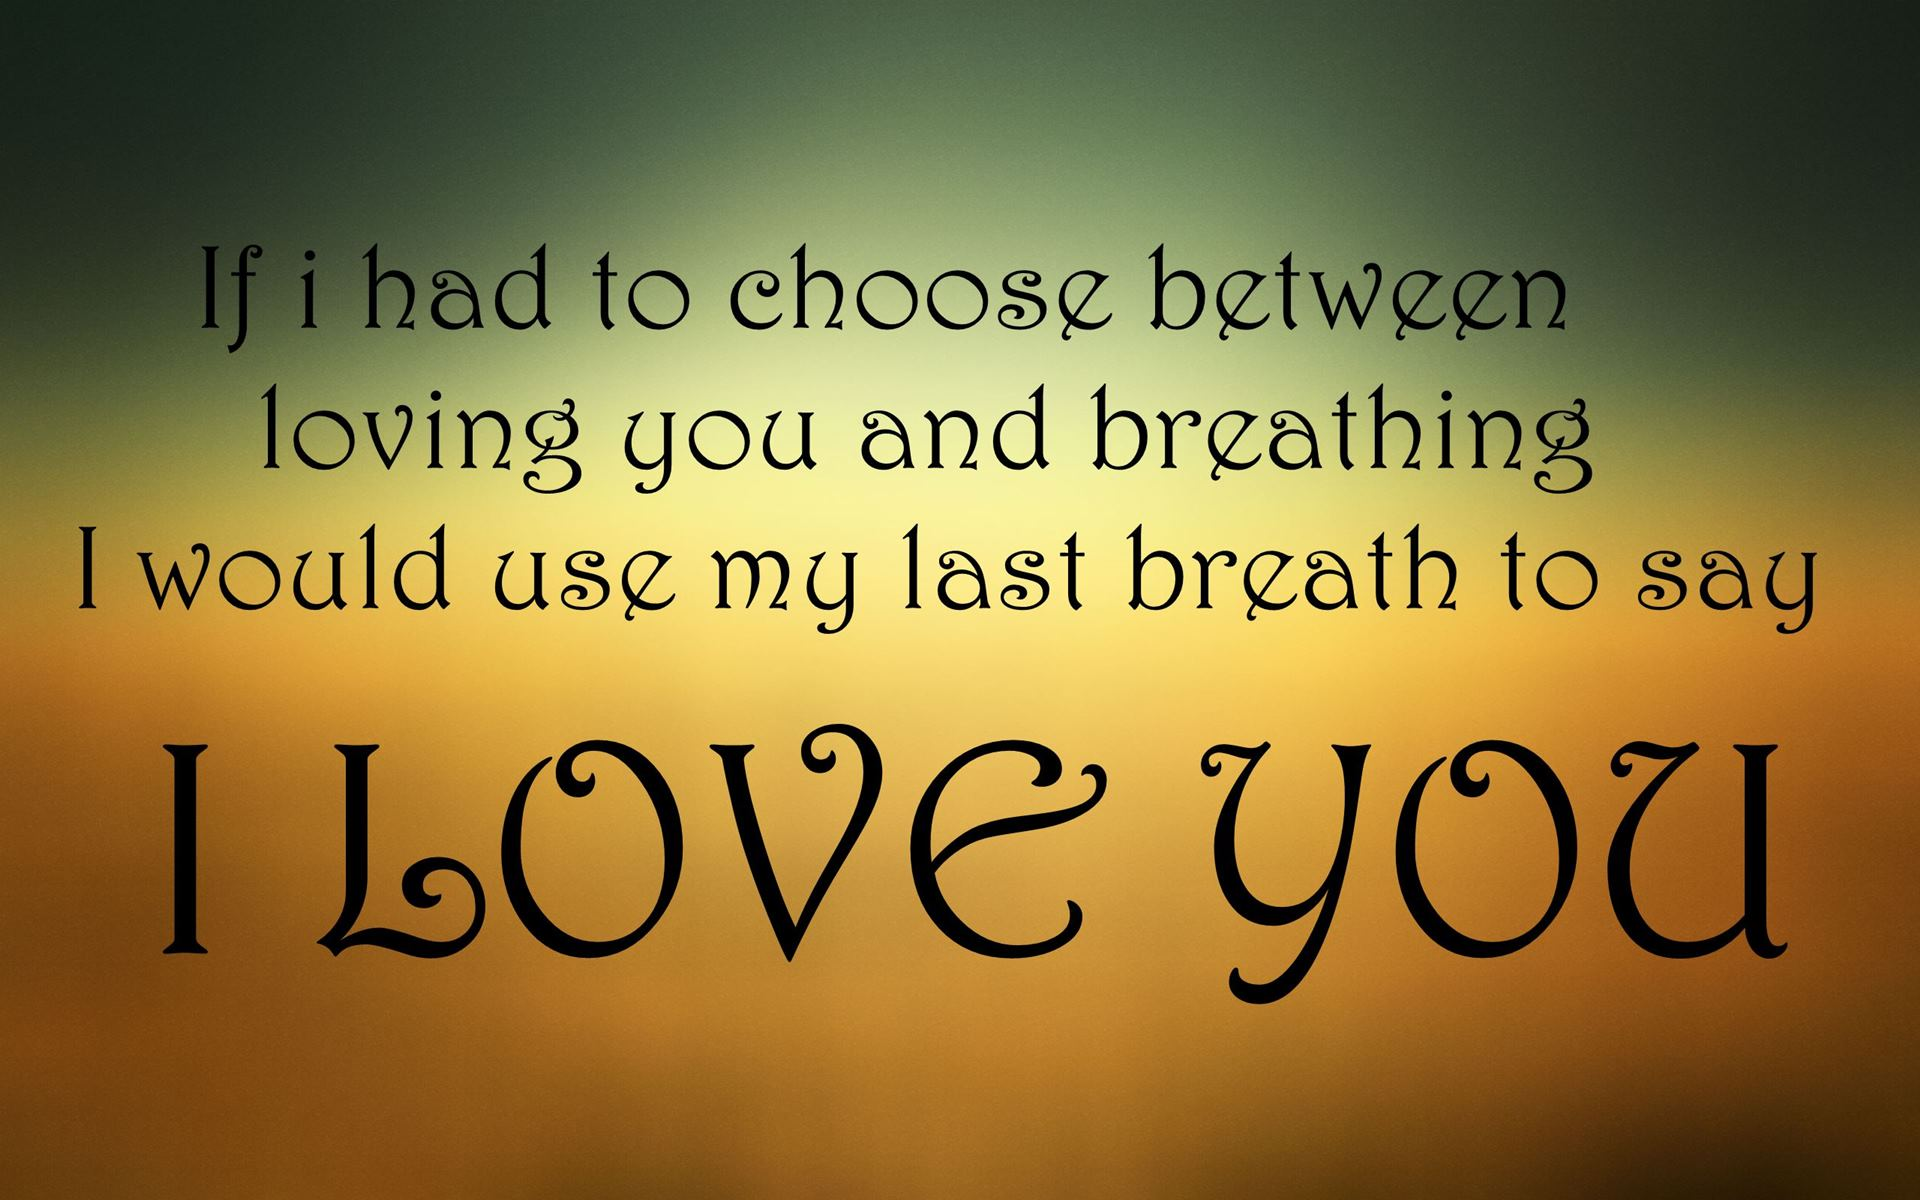 Hd Wallpapers With Quotes Of Love : Quotes About Love Wallpapers, Pictures, Images